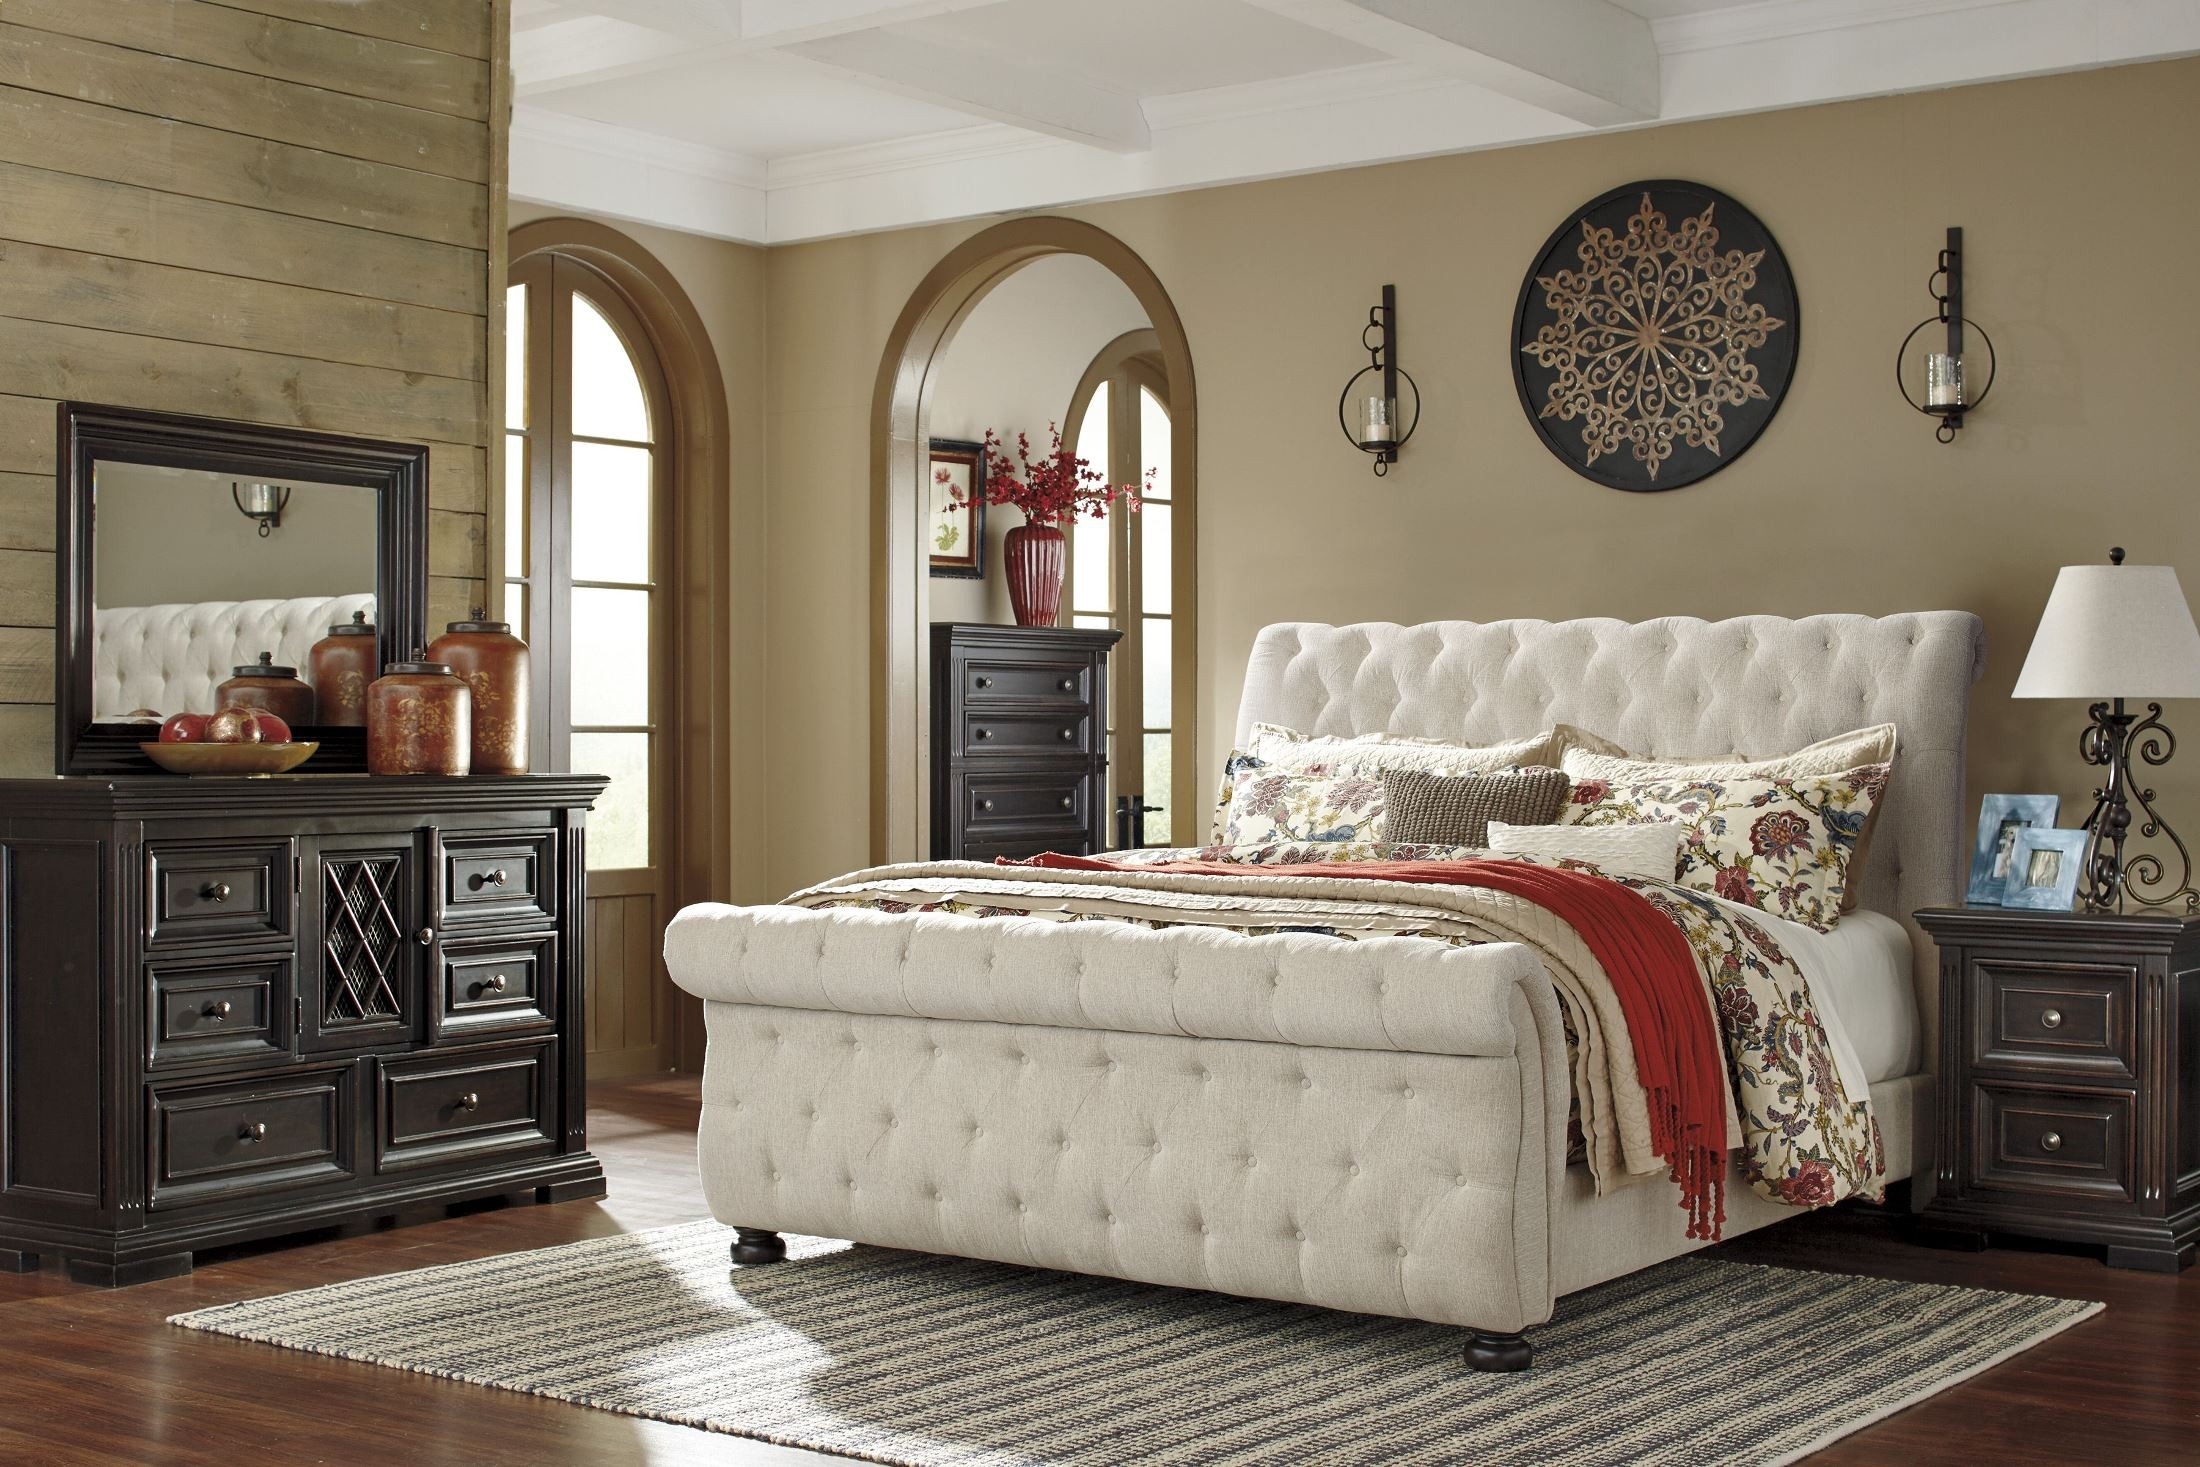 Willenburg Linen Queen Upholstered Sleigh Bed From Ashley Coleman